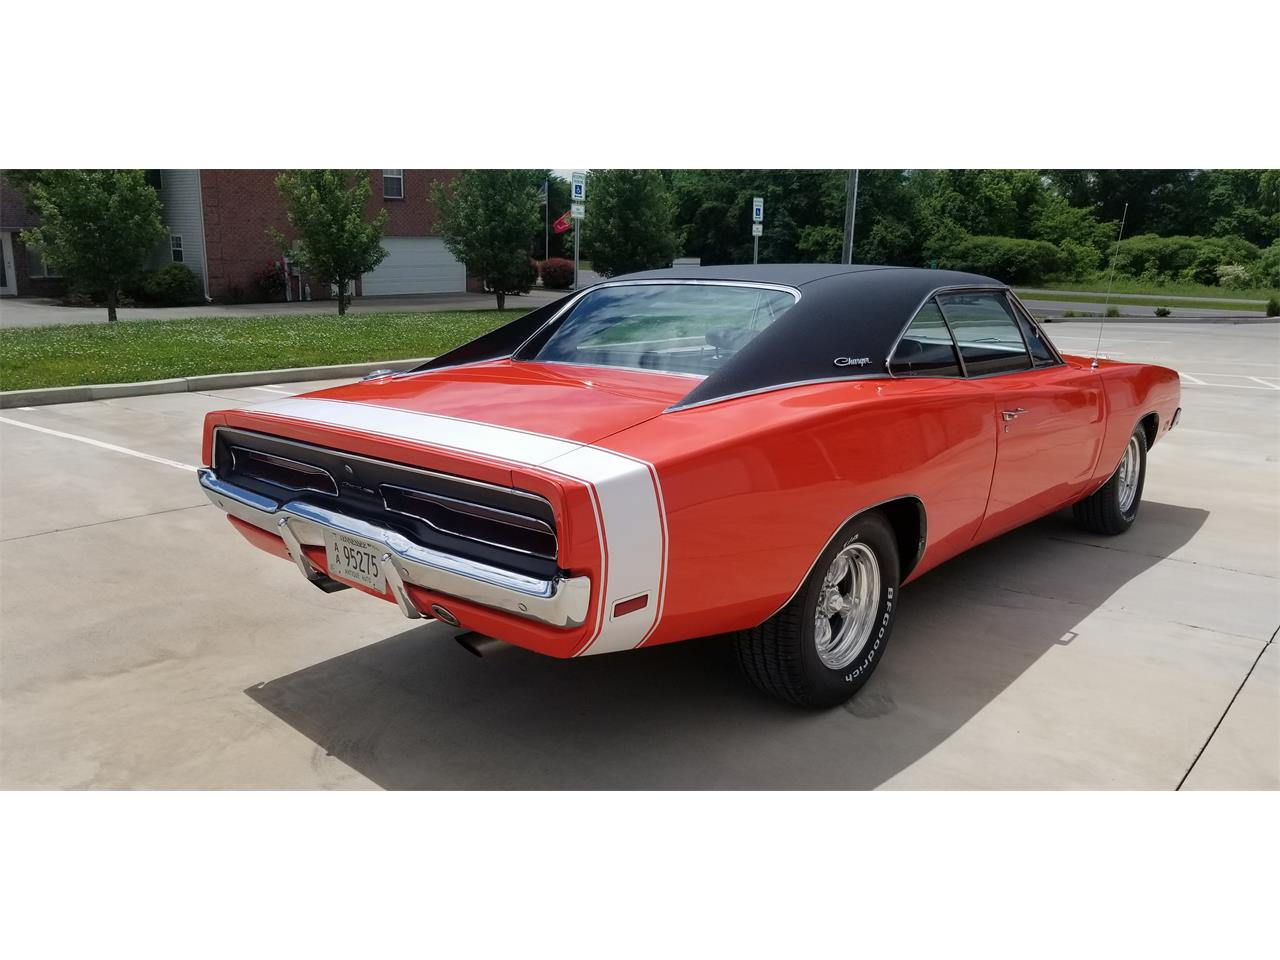 Large Picture of Classic '69 Charger Offered by a Private Seller - Q45J